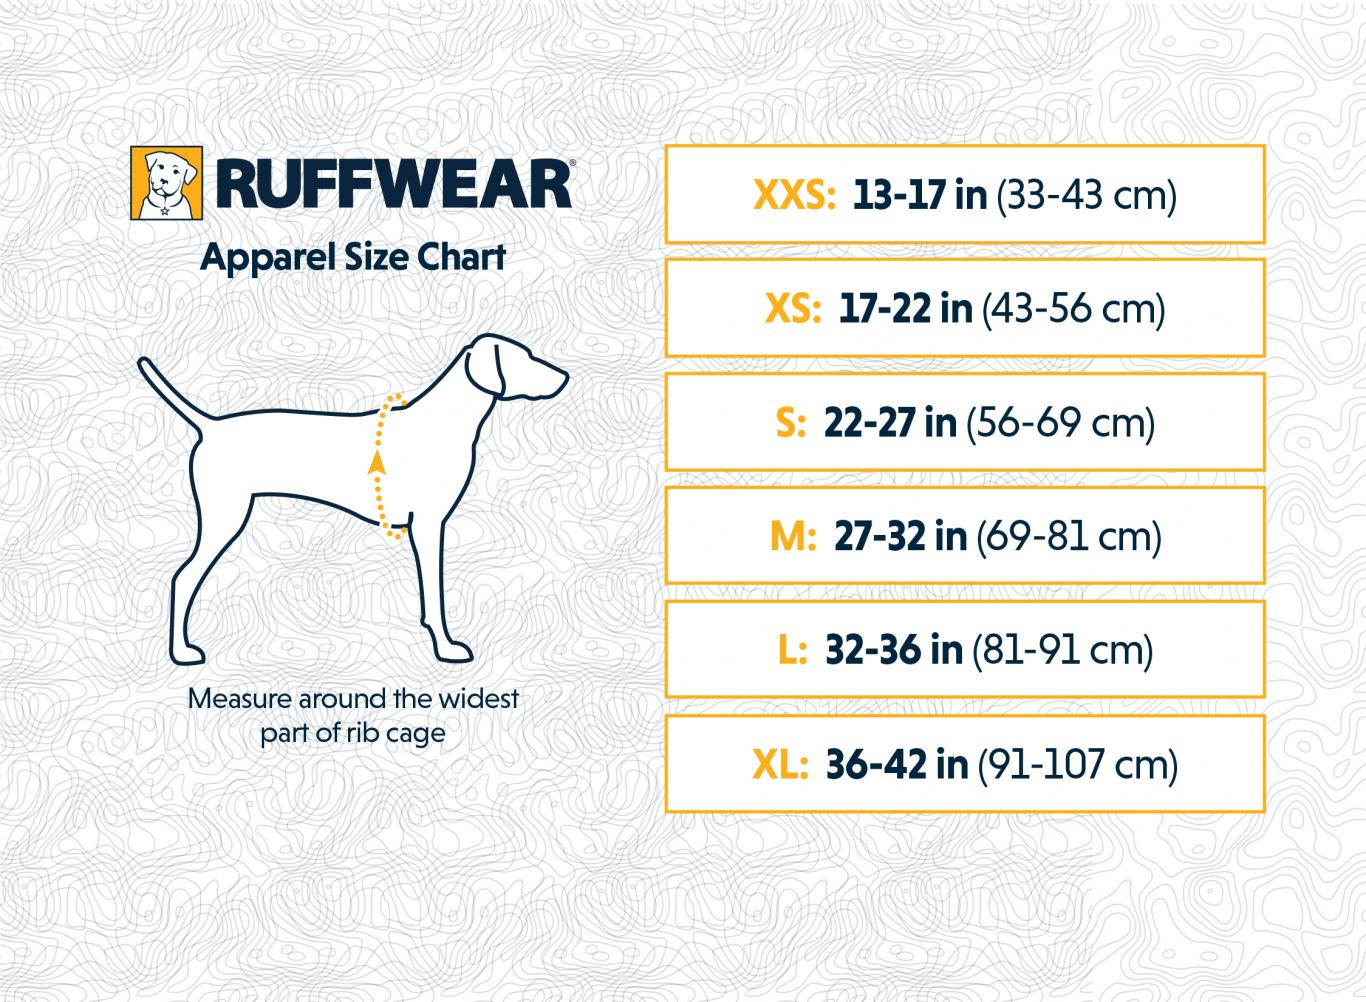 Apparel-Harnesses-Sizing-Chart-Horizontal-6